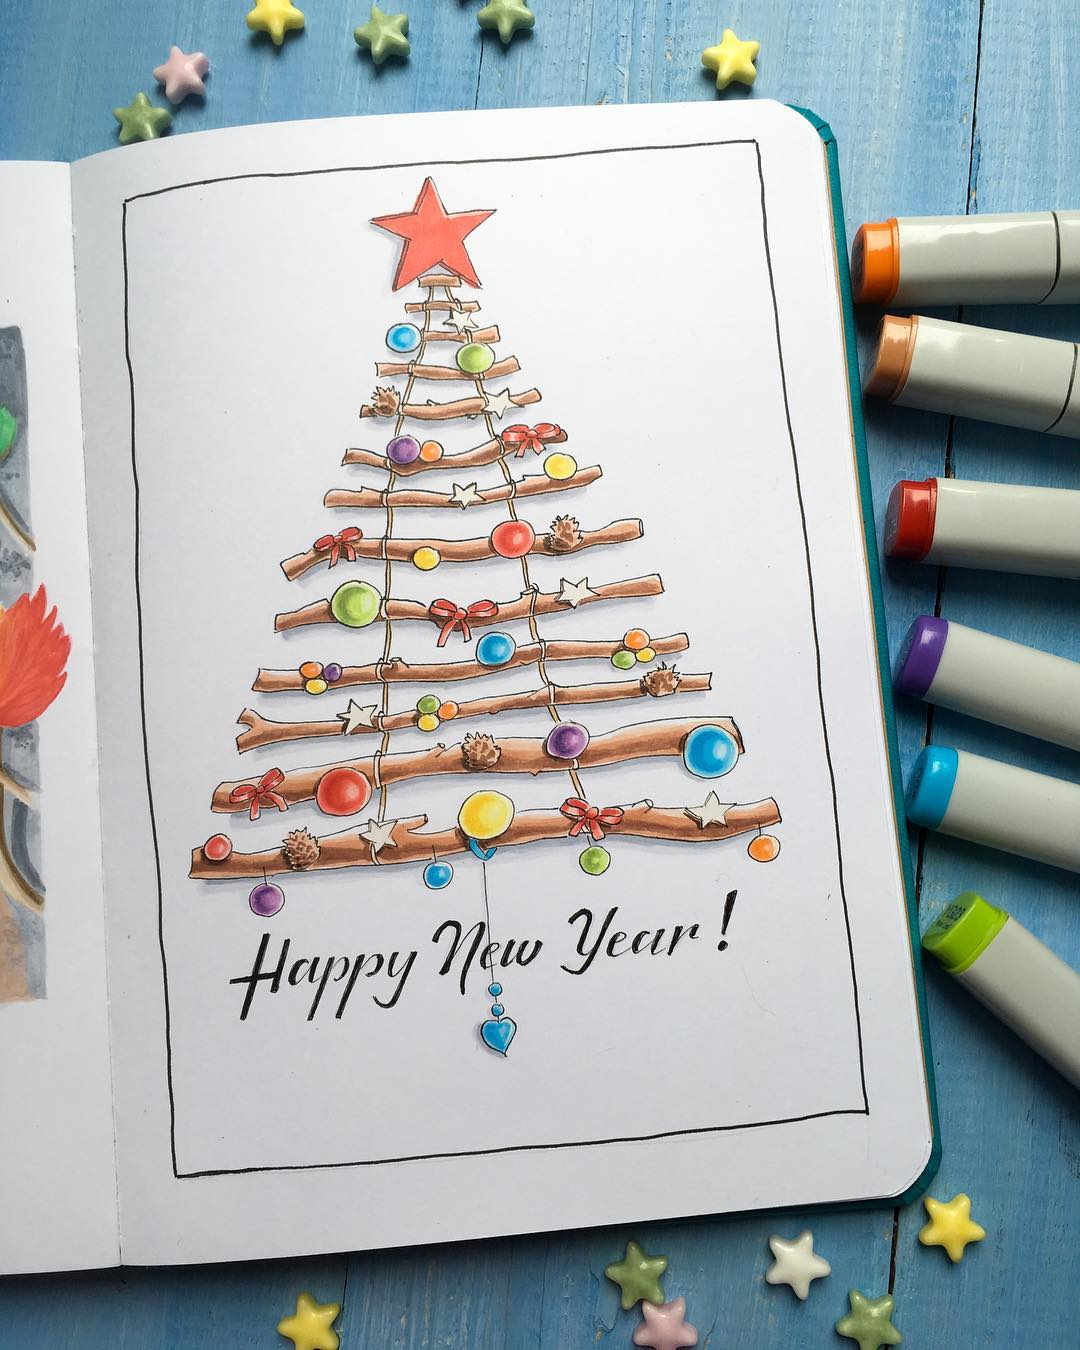 Impressive Christmas Tree Card To Wish New Year